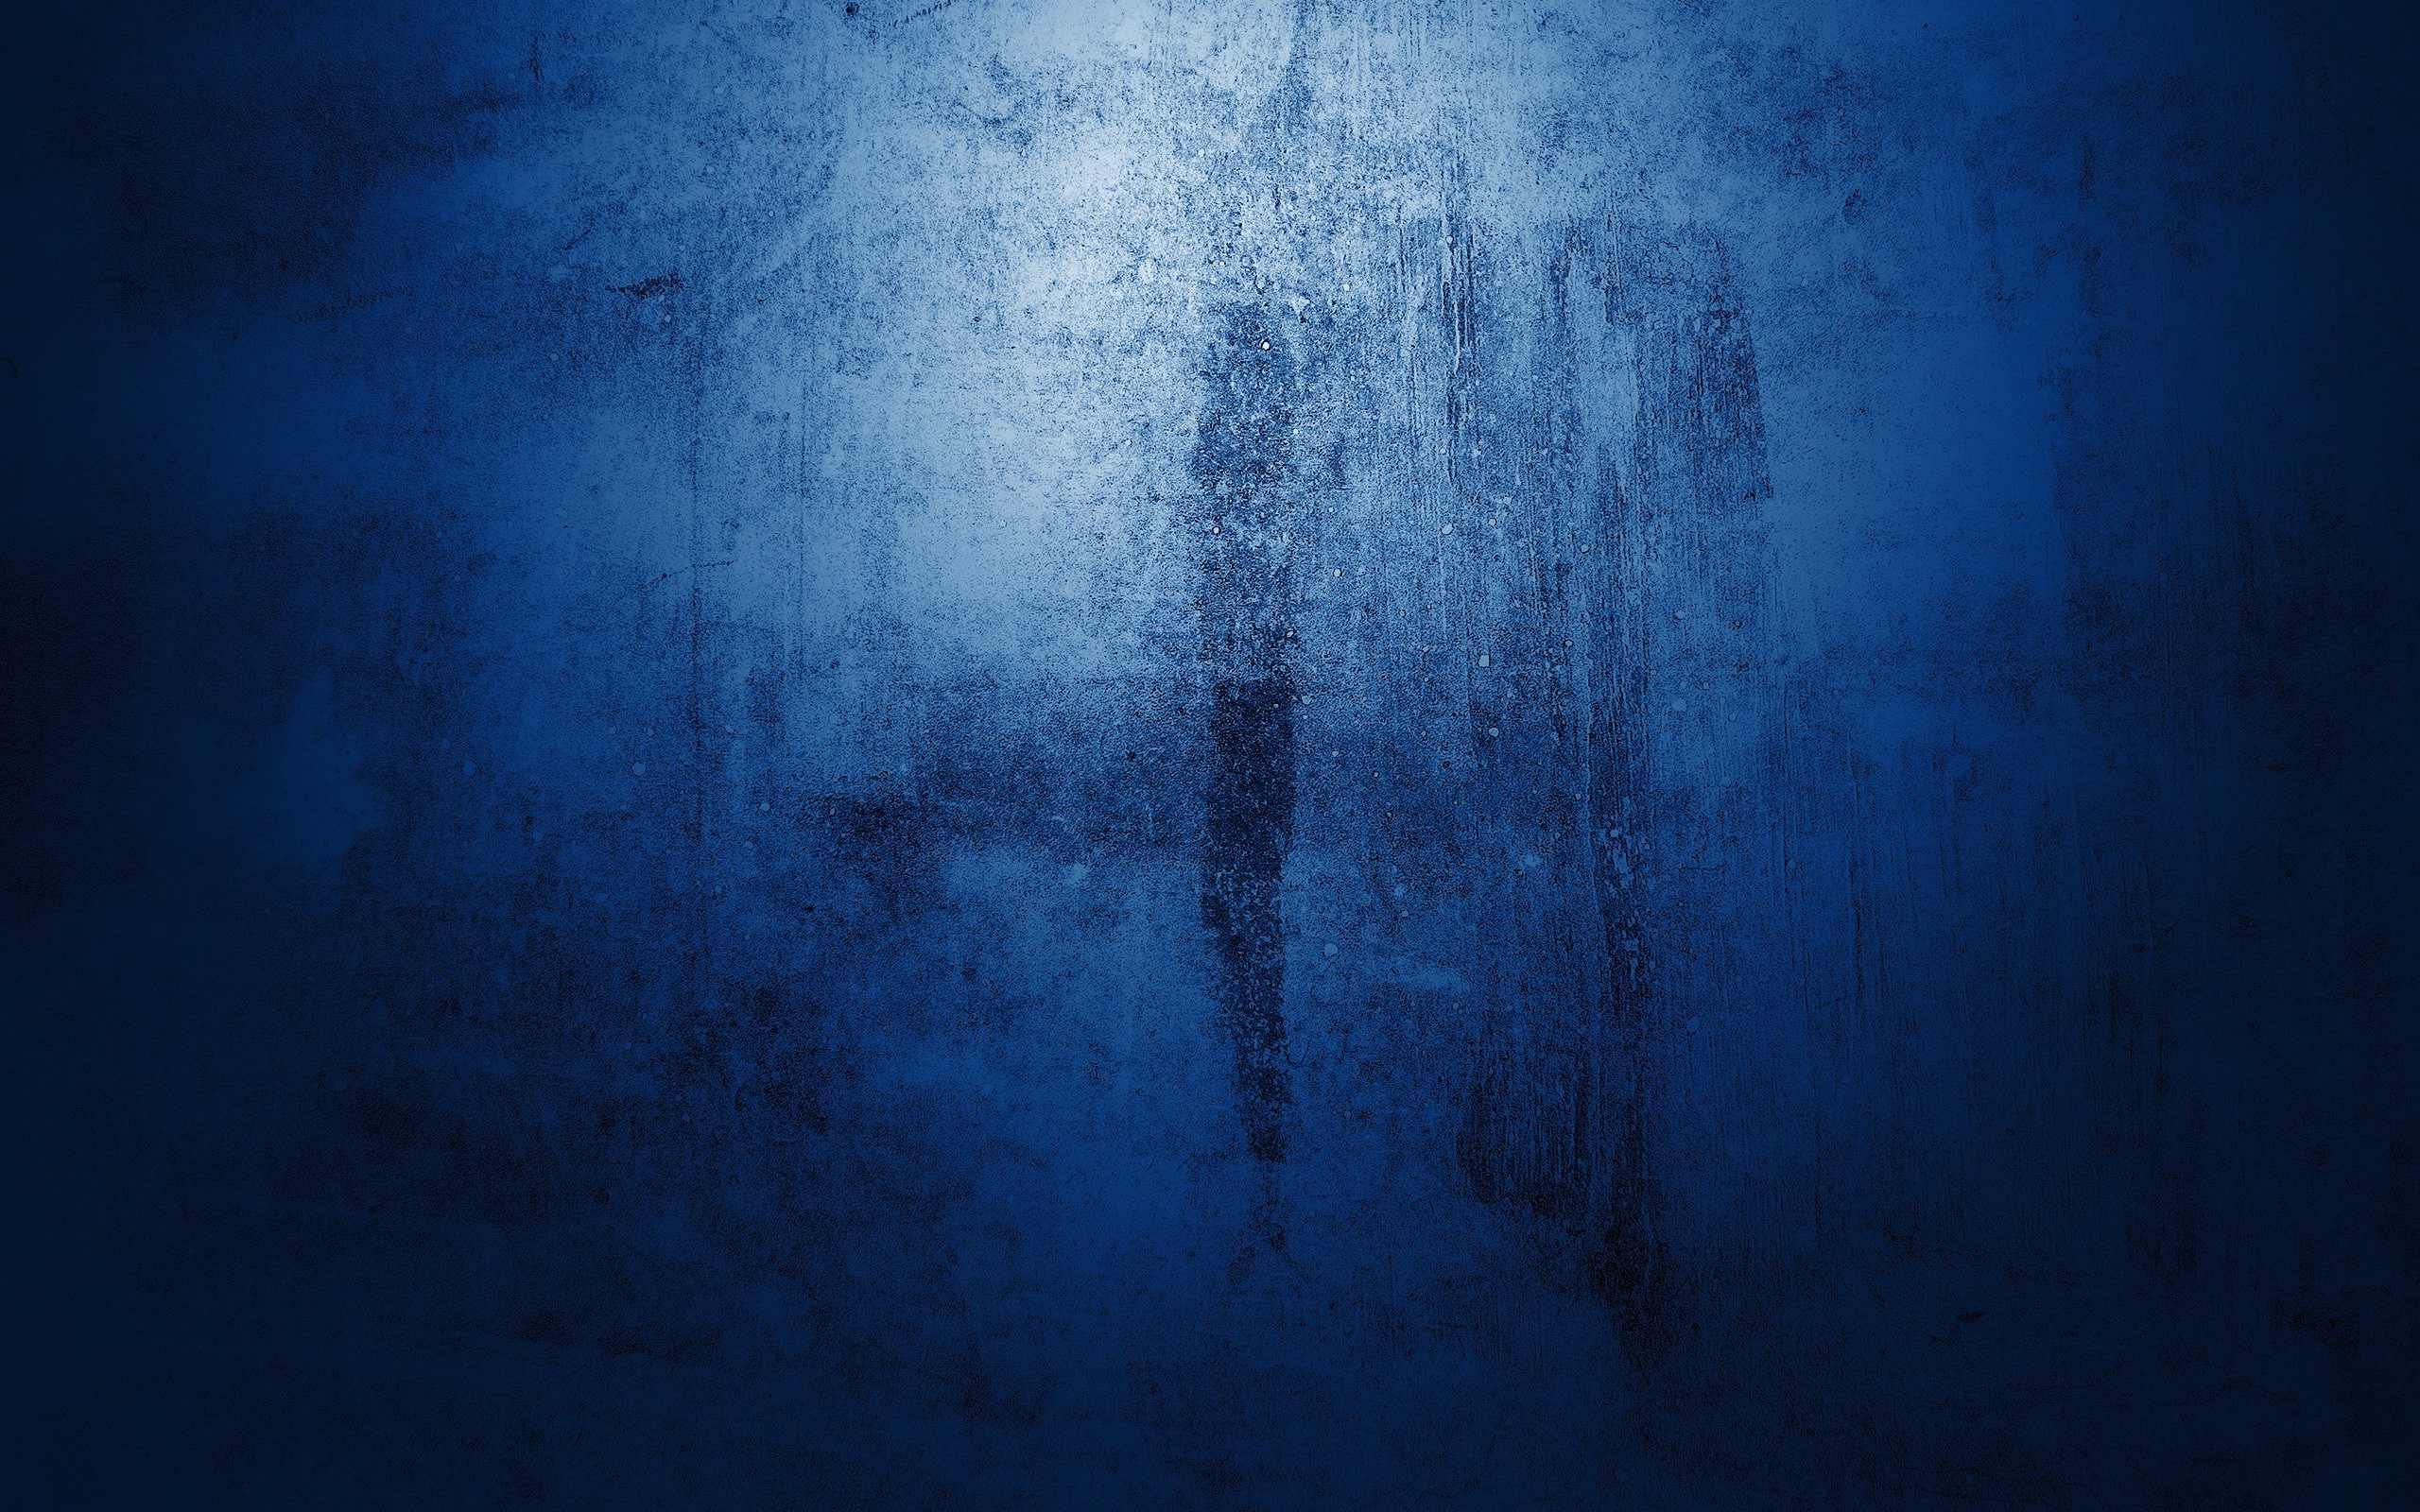 Blue texture wallpaper 15893 2560x1600